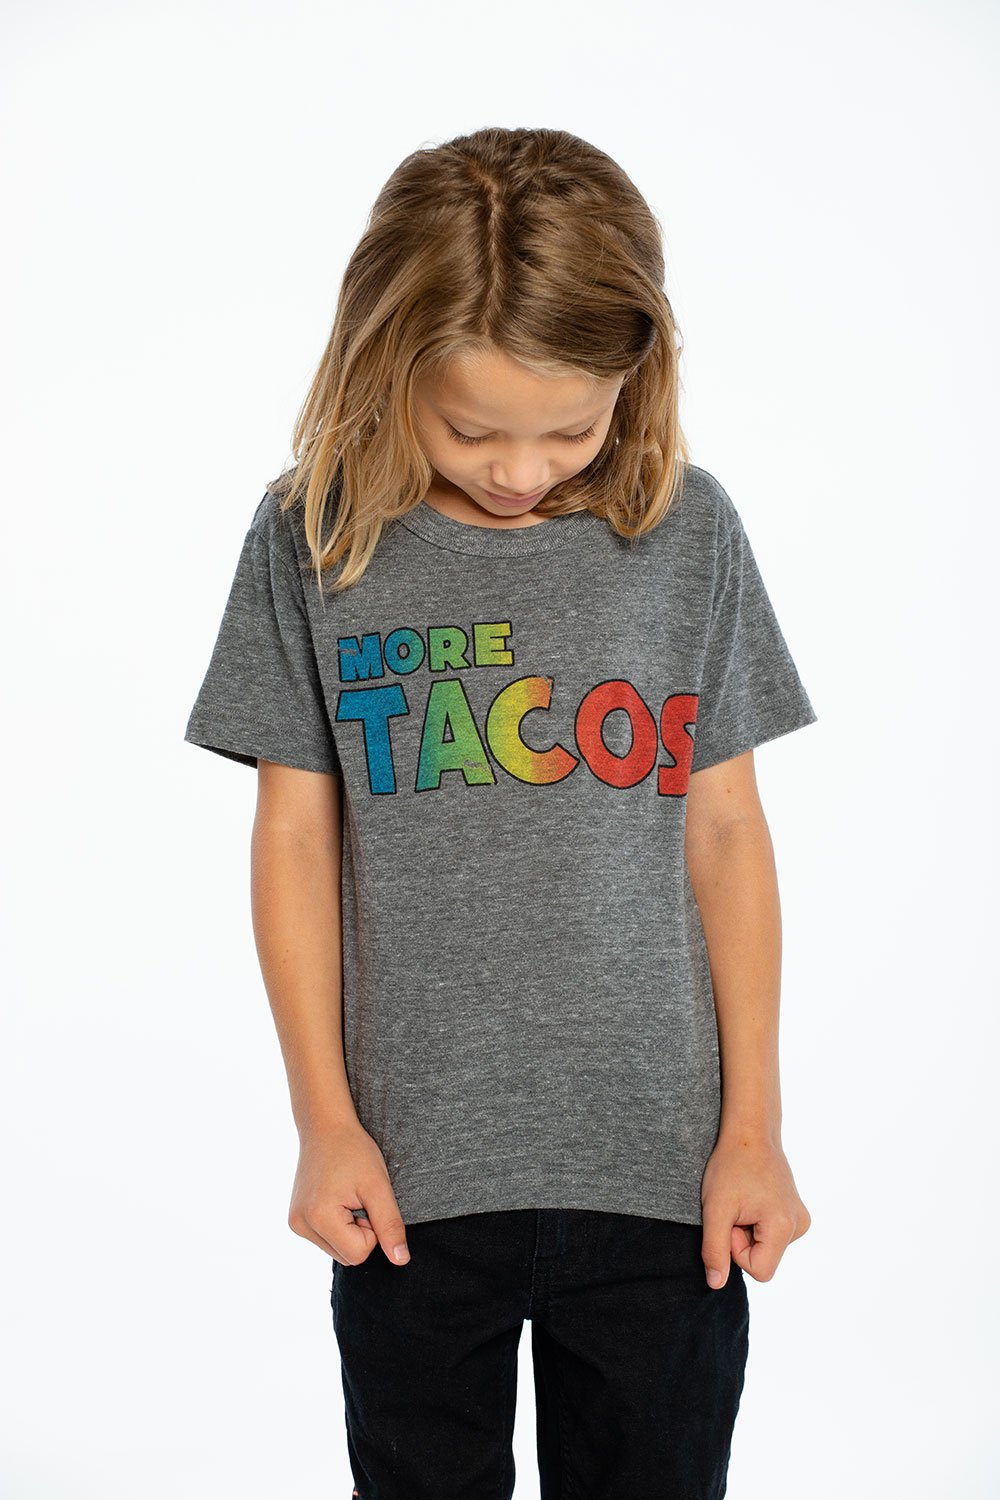 More Tacos Chaser Brand Tee, $33-.jpg